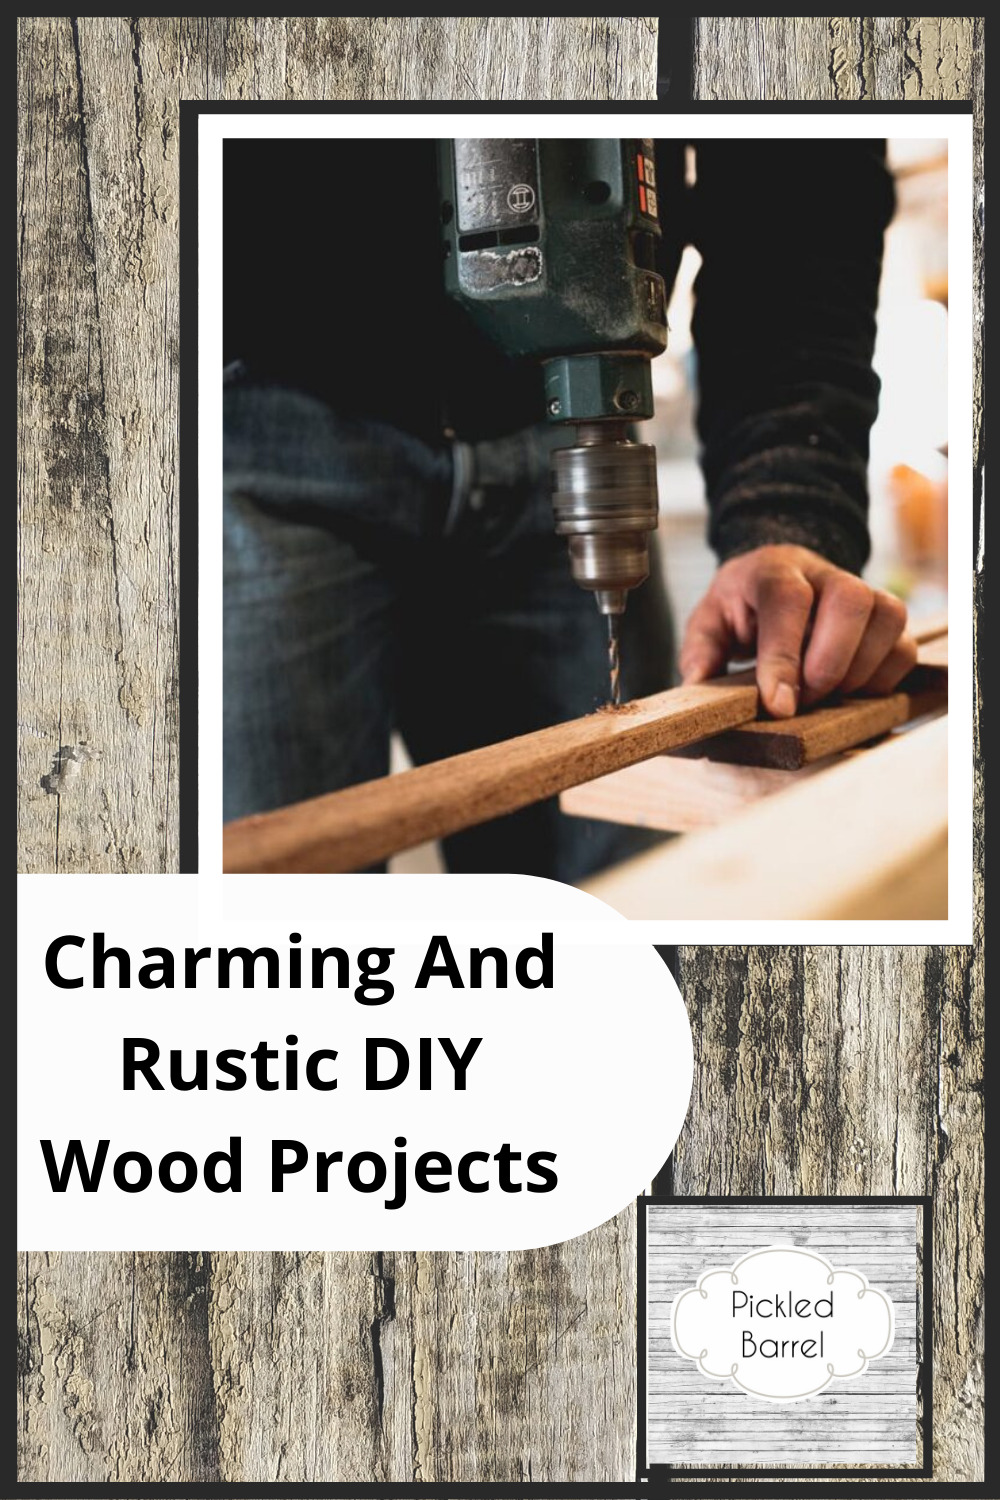 Pickledbarrel.com is the best source for farmhouse style, rustic decor, and simple upcycling ideas! Add some DIY charm to your home! Learn how you can make fun and rustic wood crafts today!